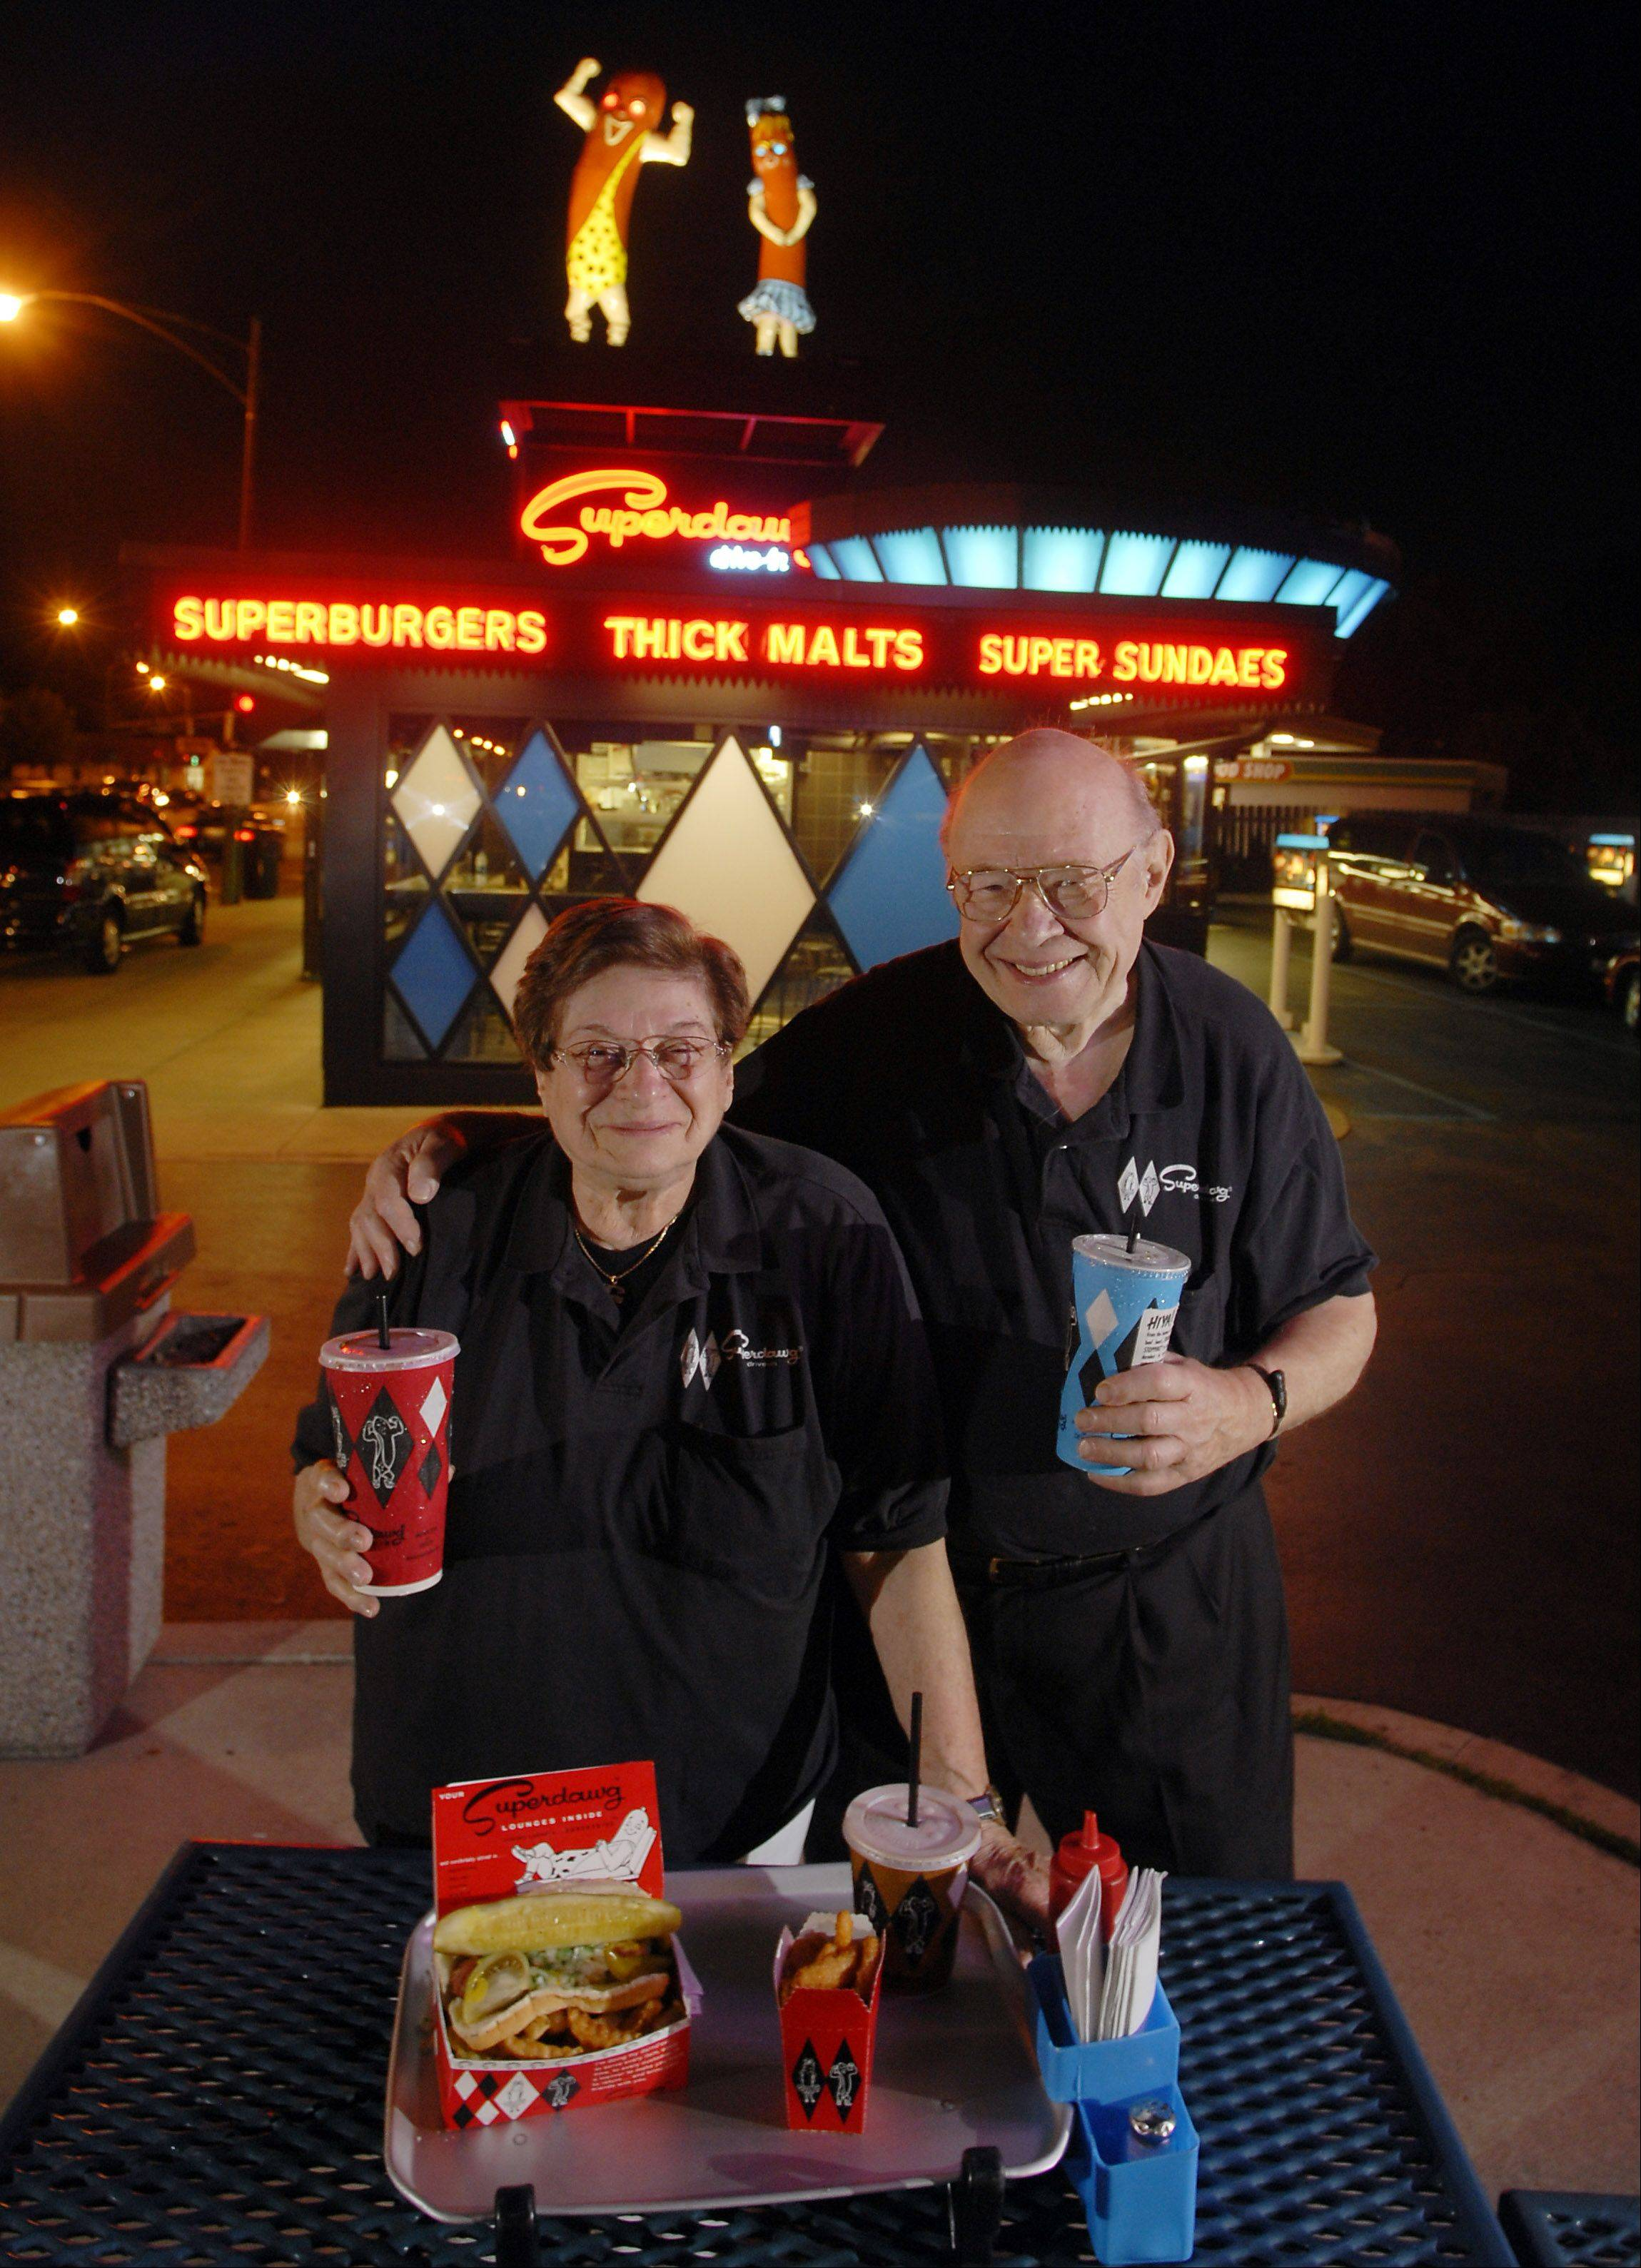 Founders of Superdawg, Maurie and Flaurie Berman, opened the original restaurant in Chicago in 1948.